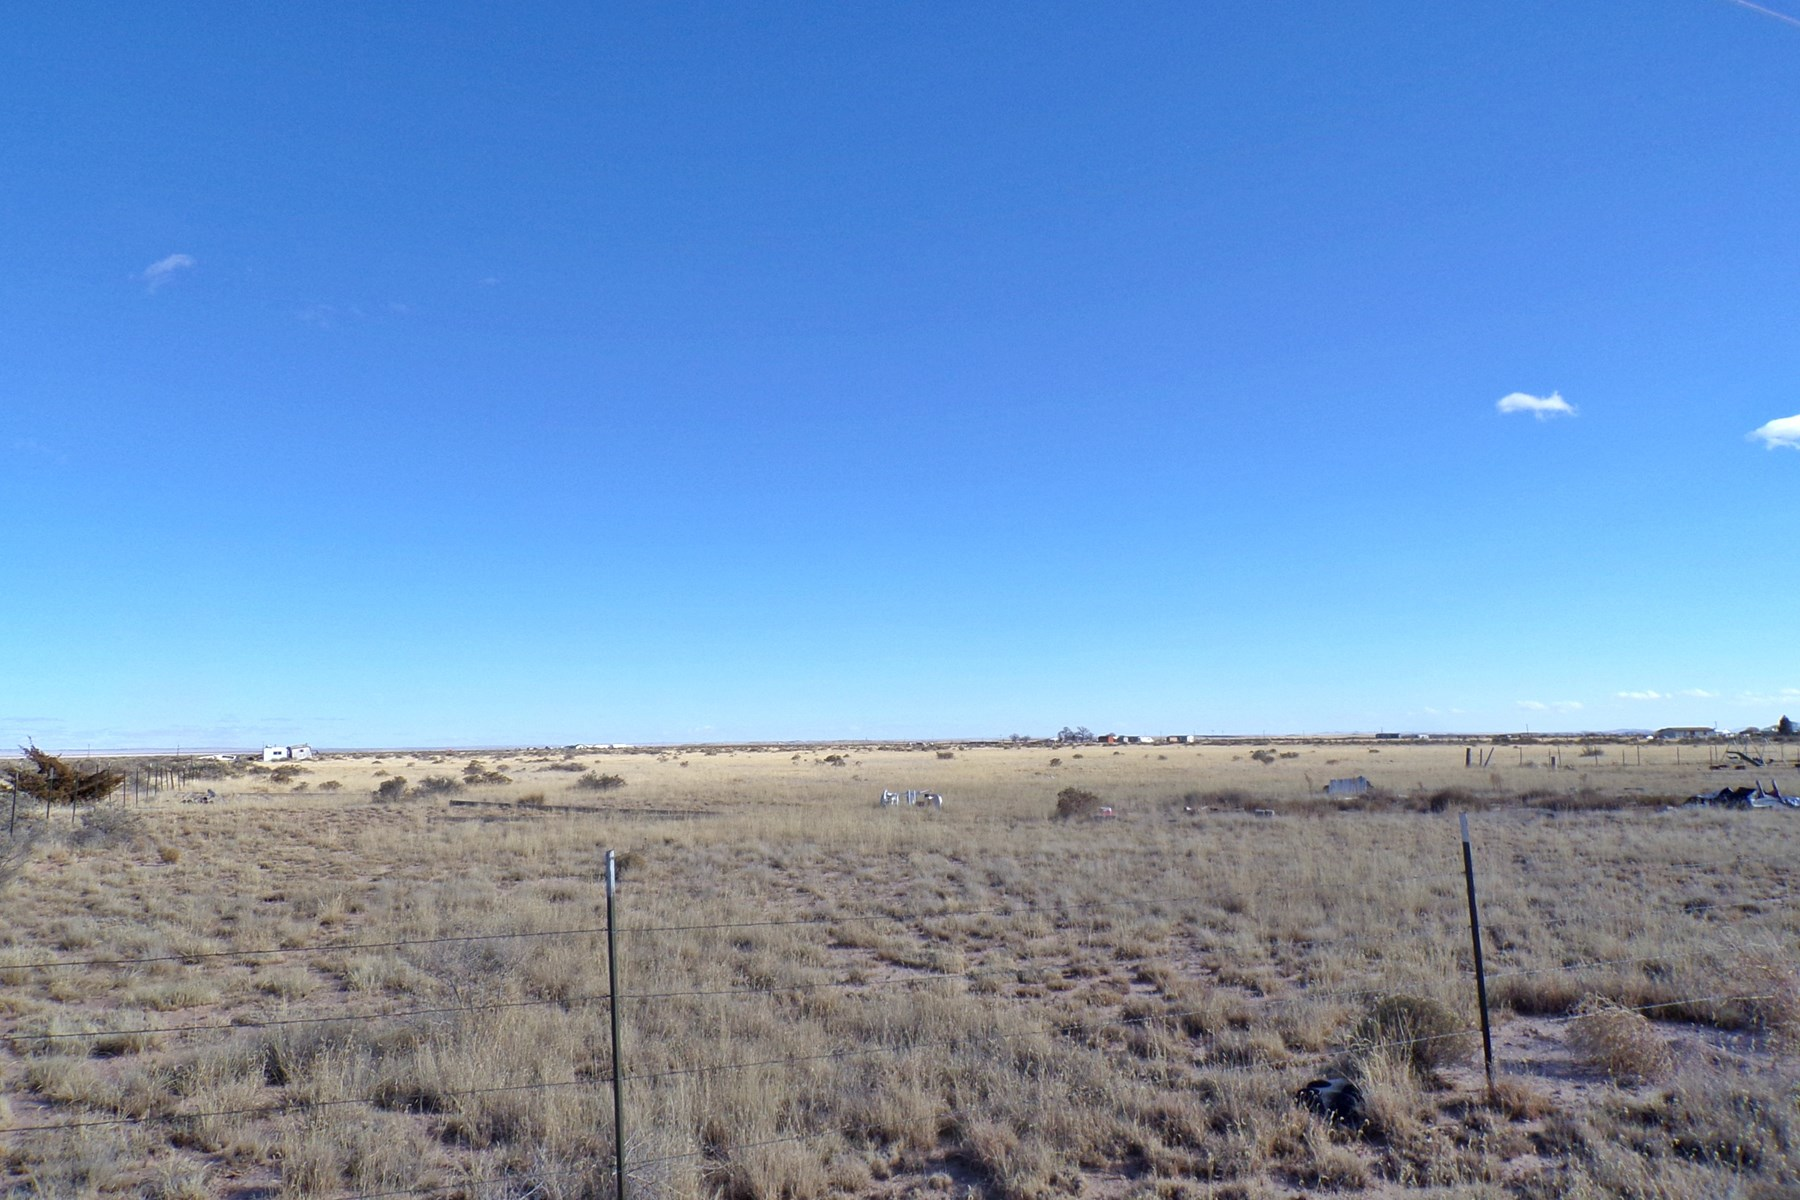 New Mexico 67 Ac Grazing Land For Sale near Estancia